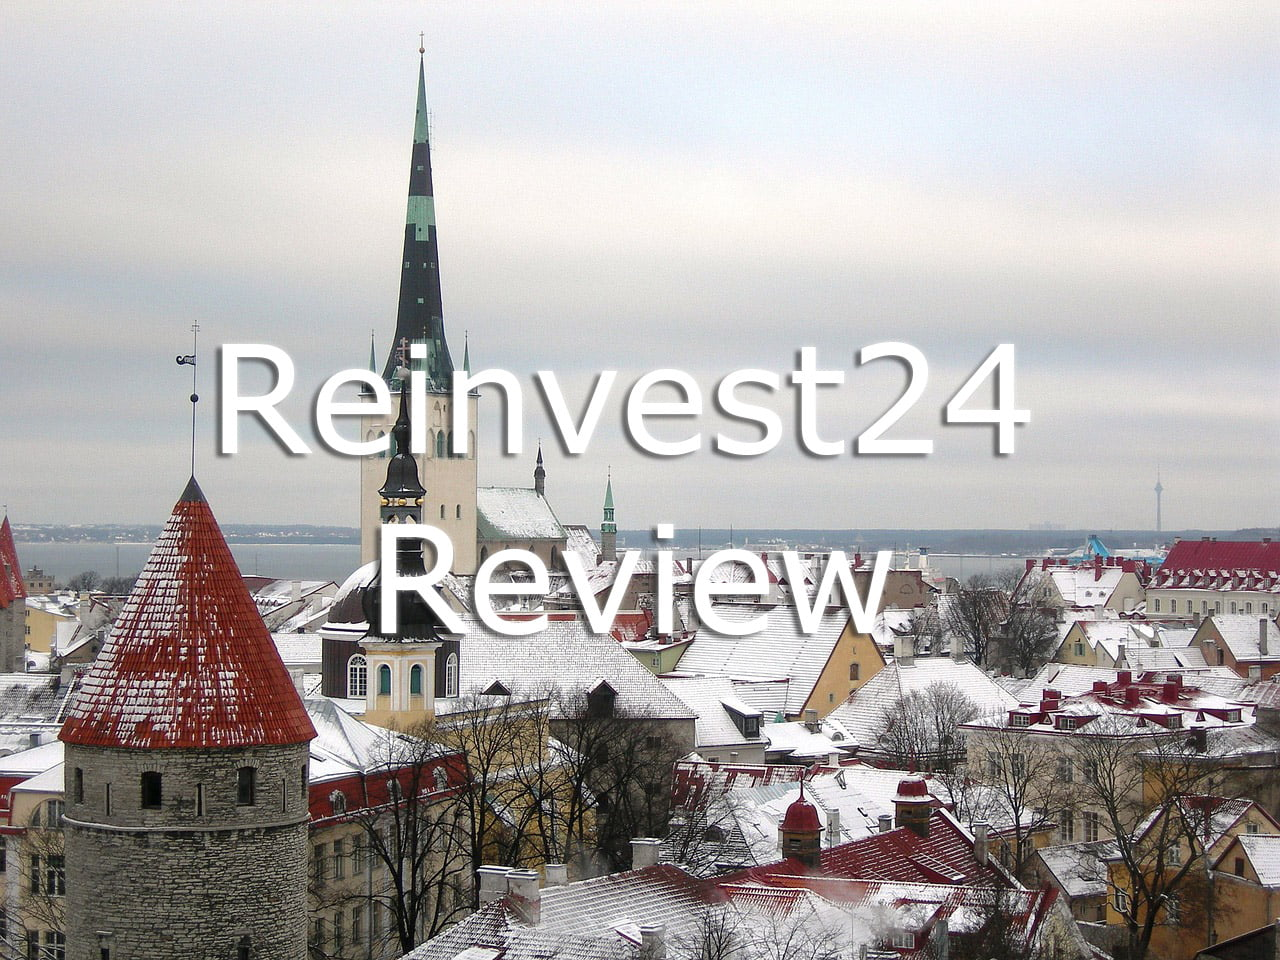 reinvest24 review